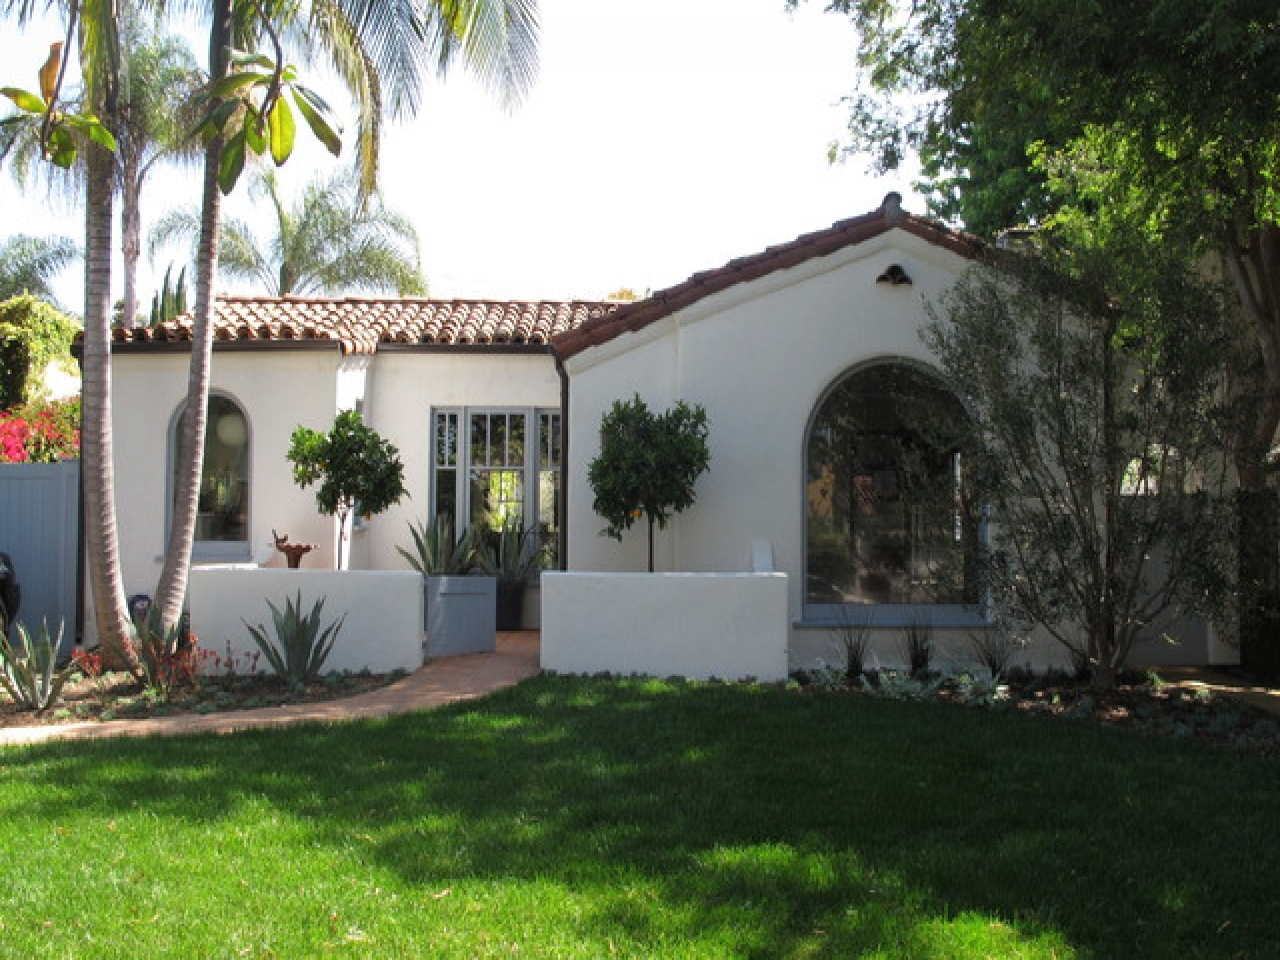 Spanish House Style Spanish Style Homes With Courtyards Small Spanish Style